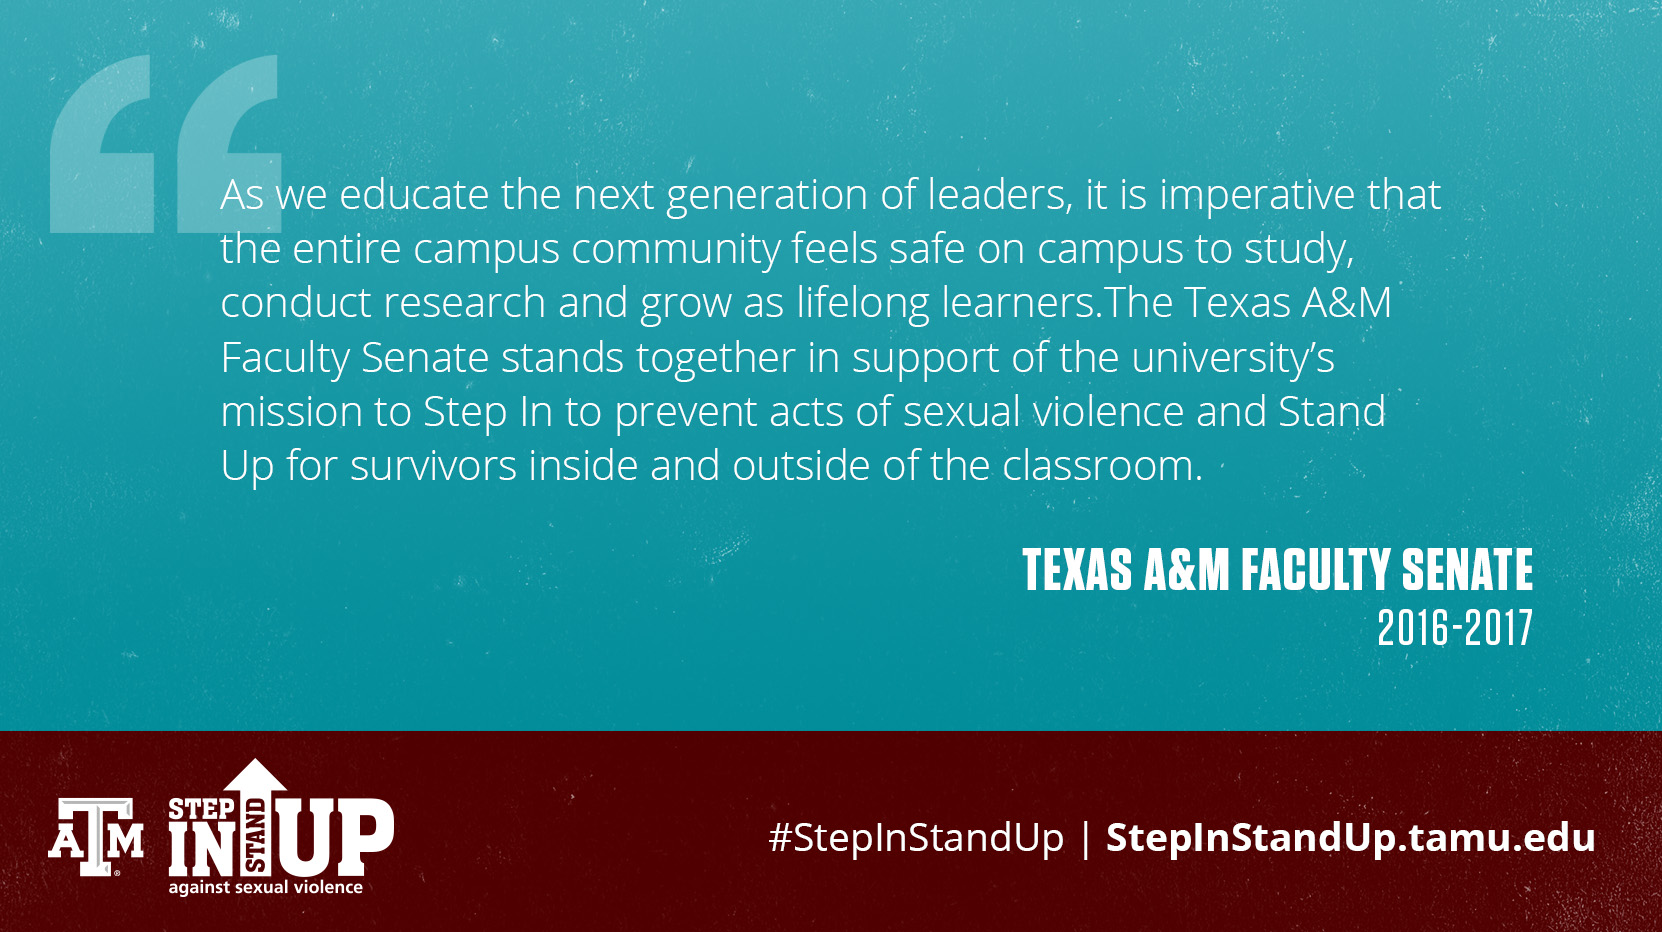 As we educate the next generation of leaders, it is imperative that the entire campus community feels safe on campus to study, conduct research and grow as lifelong learners. The Texas A&M Faculty Senate stands together in support of the university's mission to Step In to prevent acts of sexual violence and Stand Up for survivors inside and outside of the classroom. - Texas A&M Faculty Senate 2016-2017